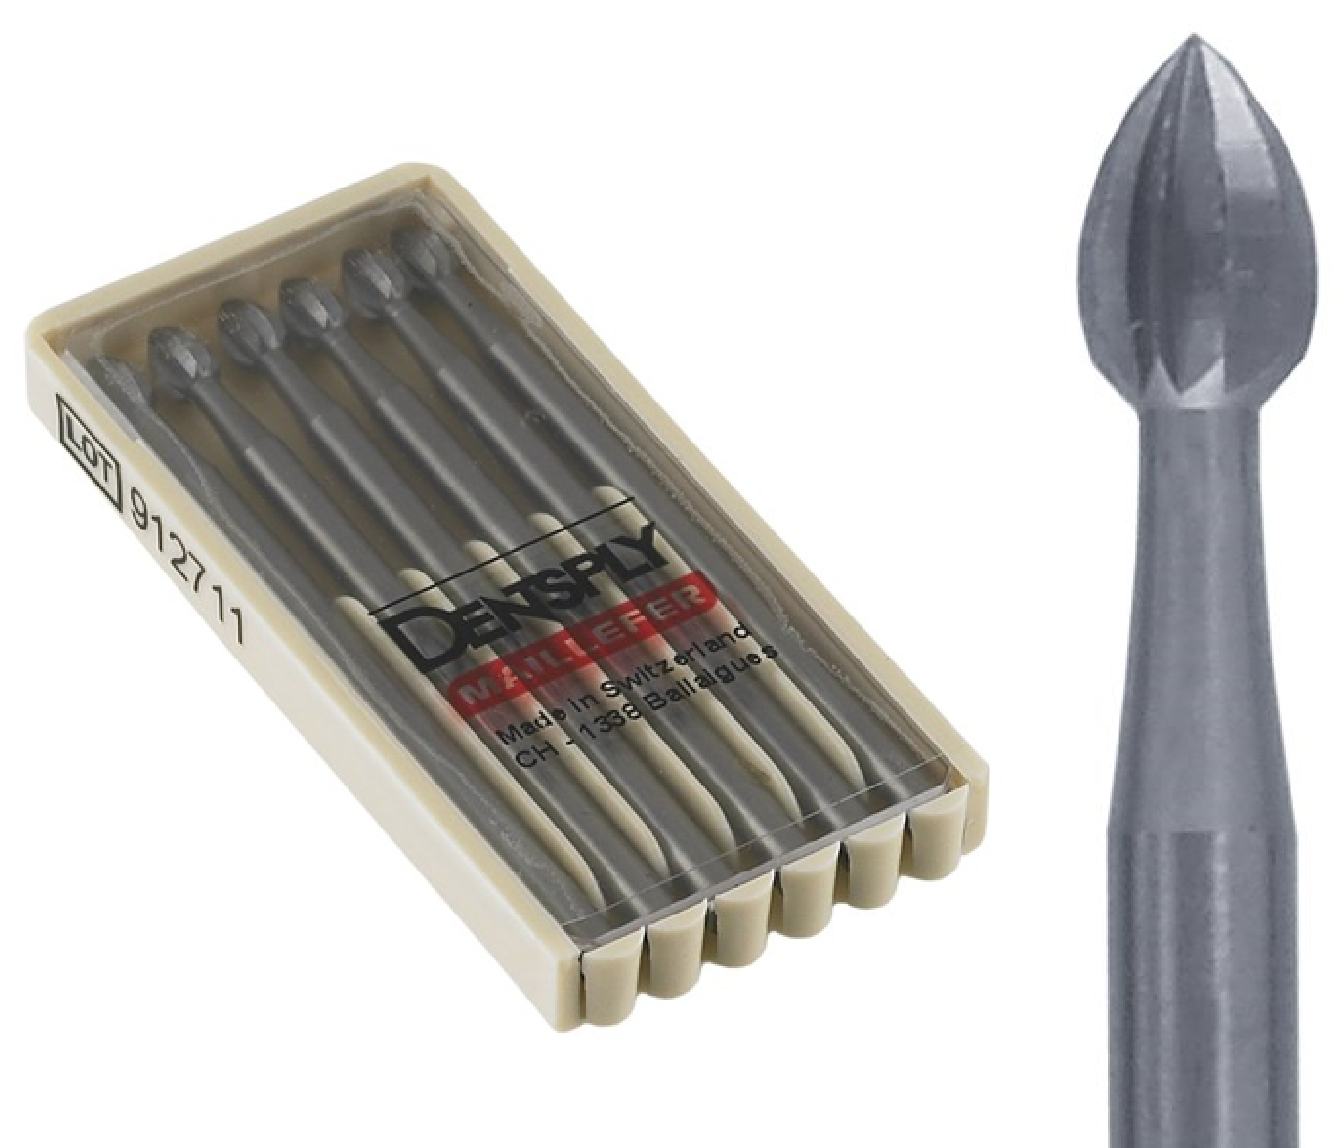 Dentsply Maillefer 6 Pieces Bud Burs 4.0mm 040 Swiss Made Fig 6 Dentsply Maillefer Jewelry Dental at Sears.com